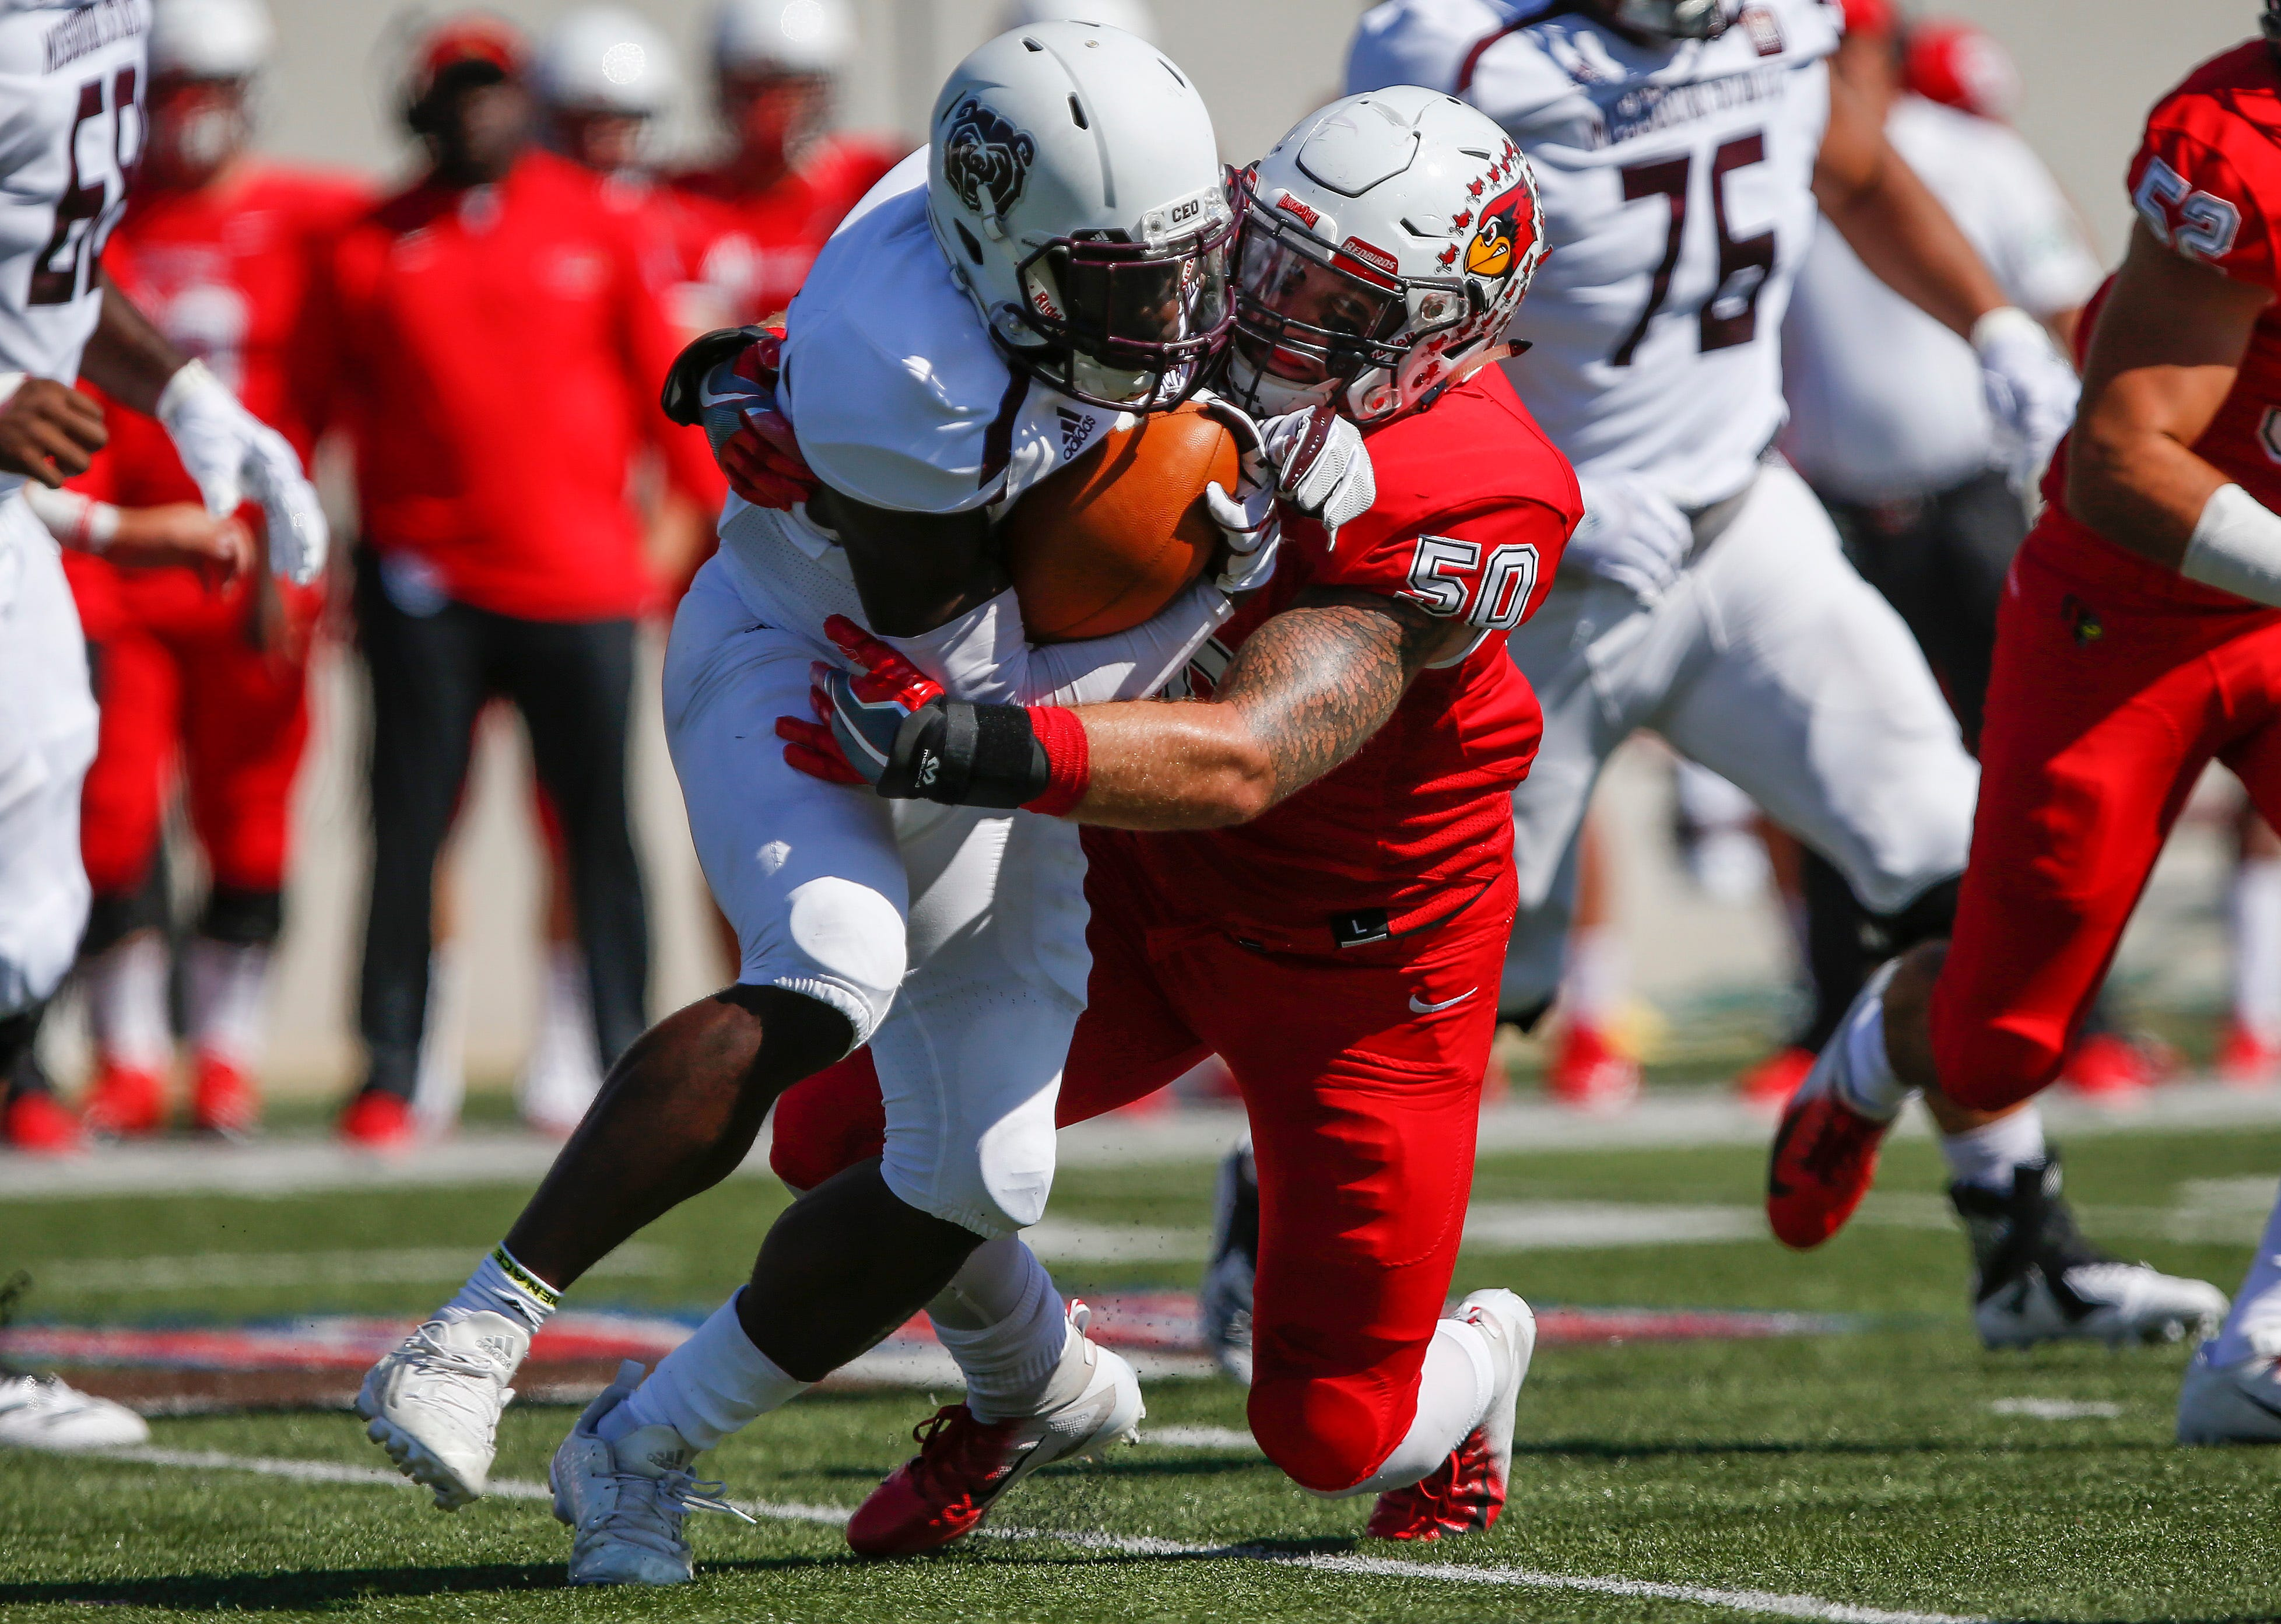 Jason Randall is brought down by Ty DeForest during the Missouri State Bears' game against the Illinois State Redbirds at Plaster Stadium on Saturday, Sept. 29, 2018.